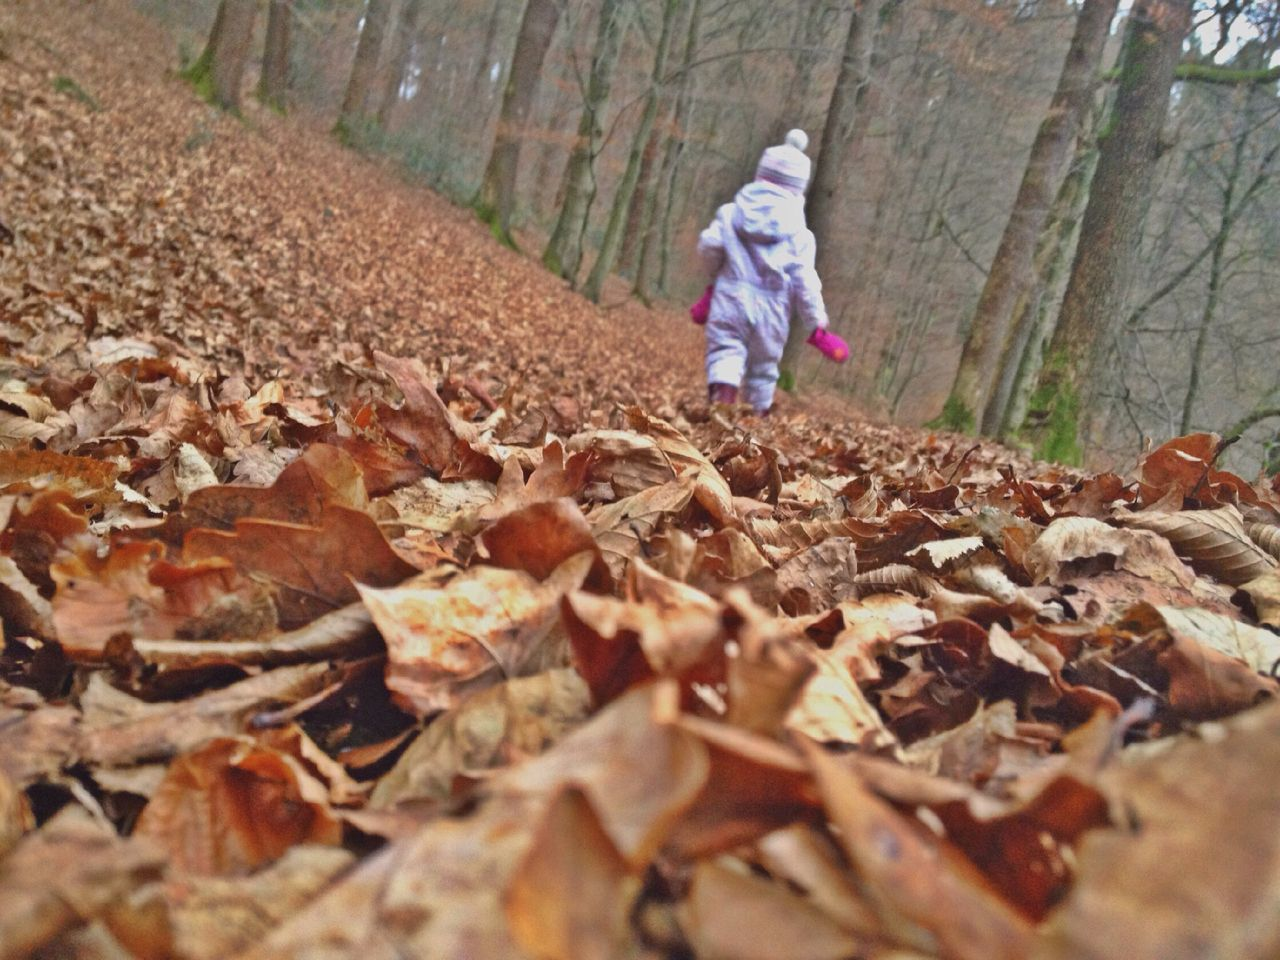 Rear View Of Child Walking On Street Covered With Dry Leaves In Forest